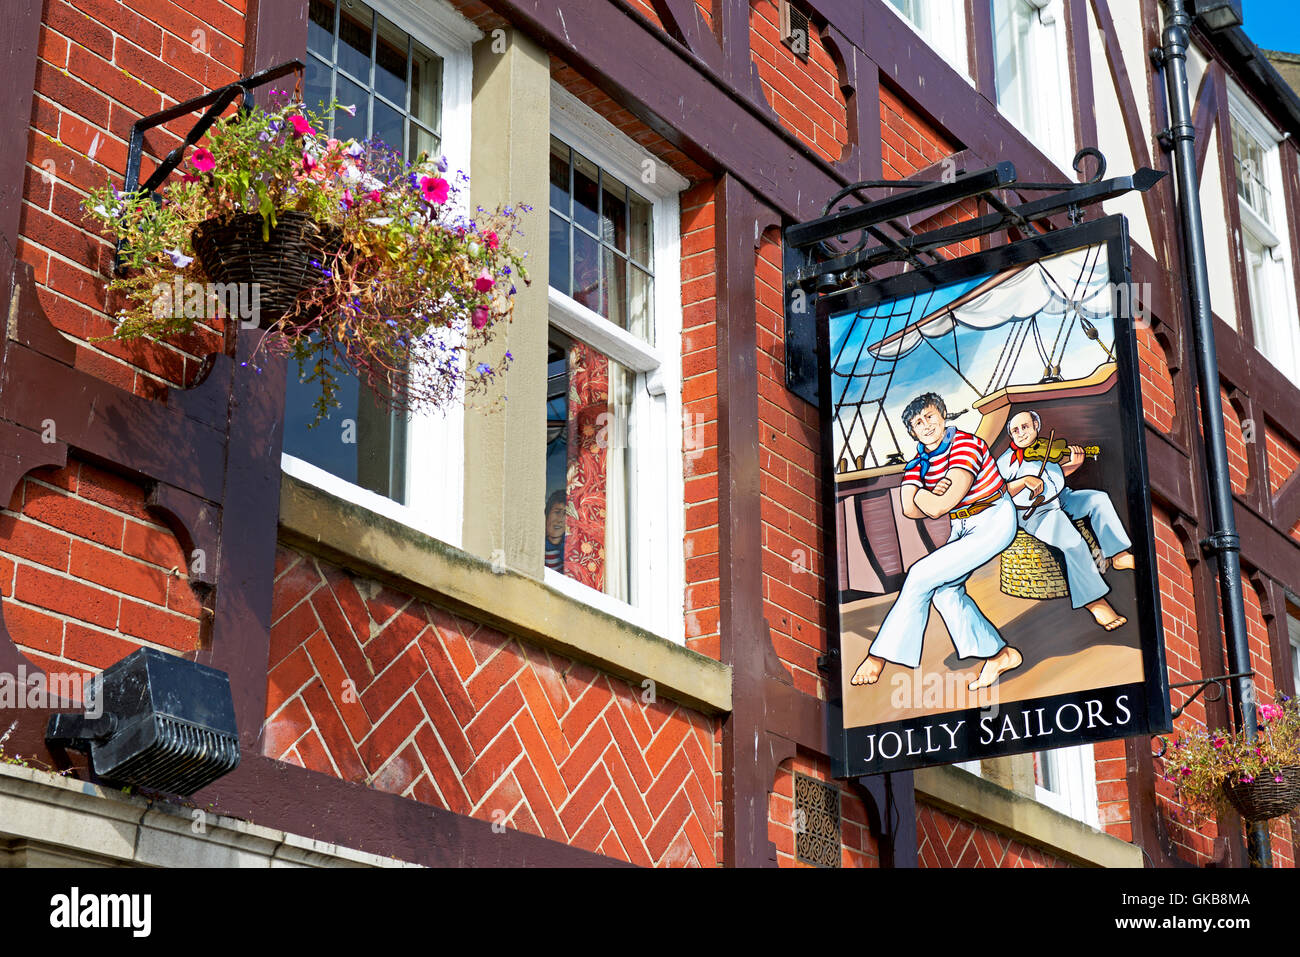 Inscrivez-vous pour le Jolly Sailor pub, Whitby, North Yorkshire, England UK Photo Stock